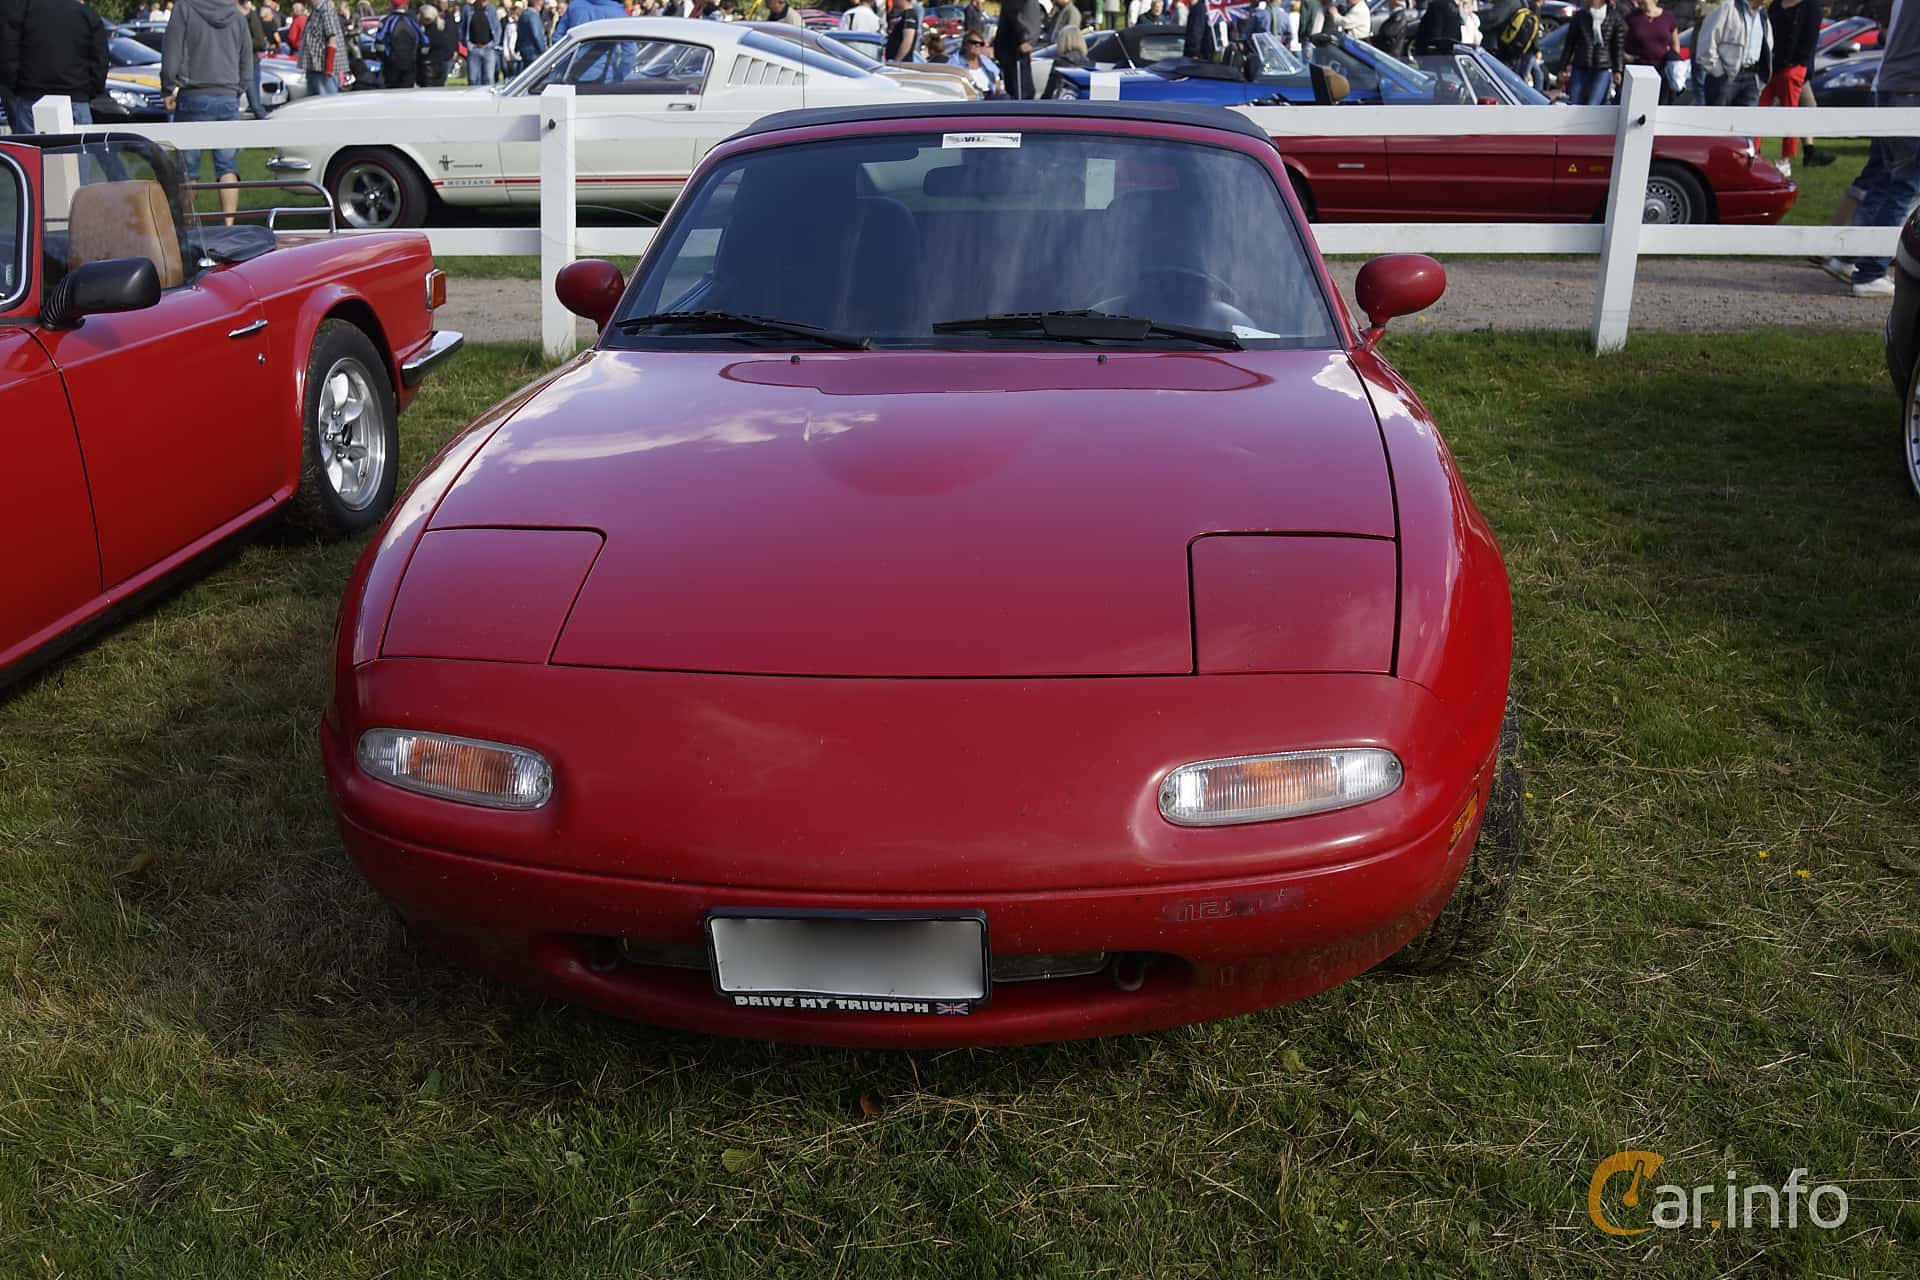 Front of Mazda MX-5 1.6 Manual, 115ps, 1990 at Sportvagnsträffen 2015